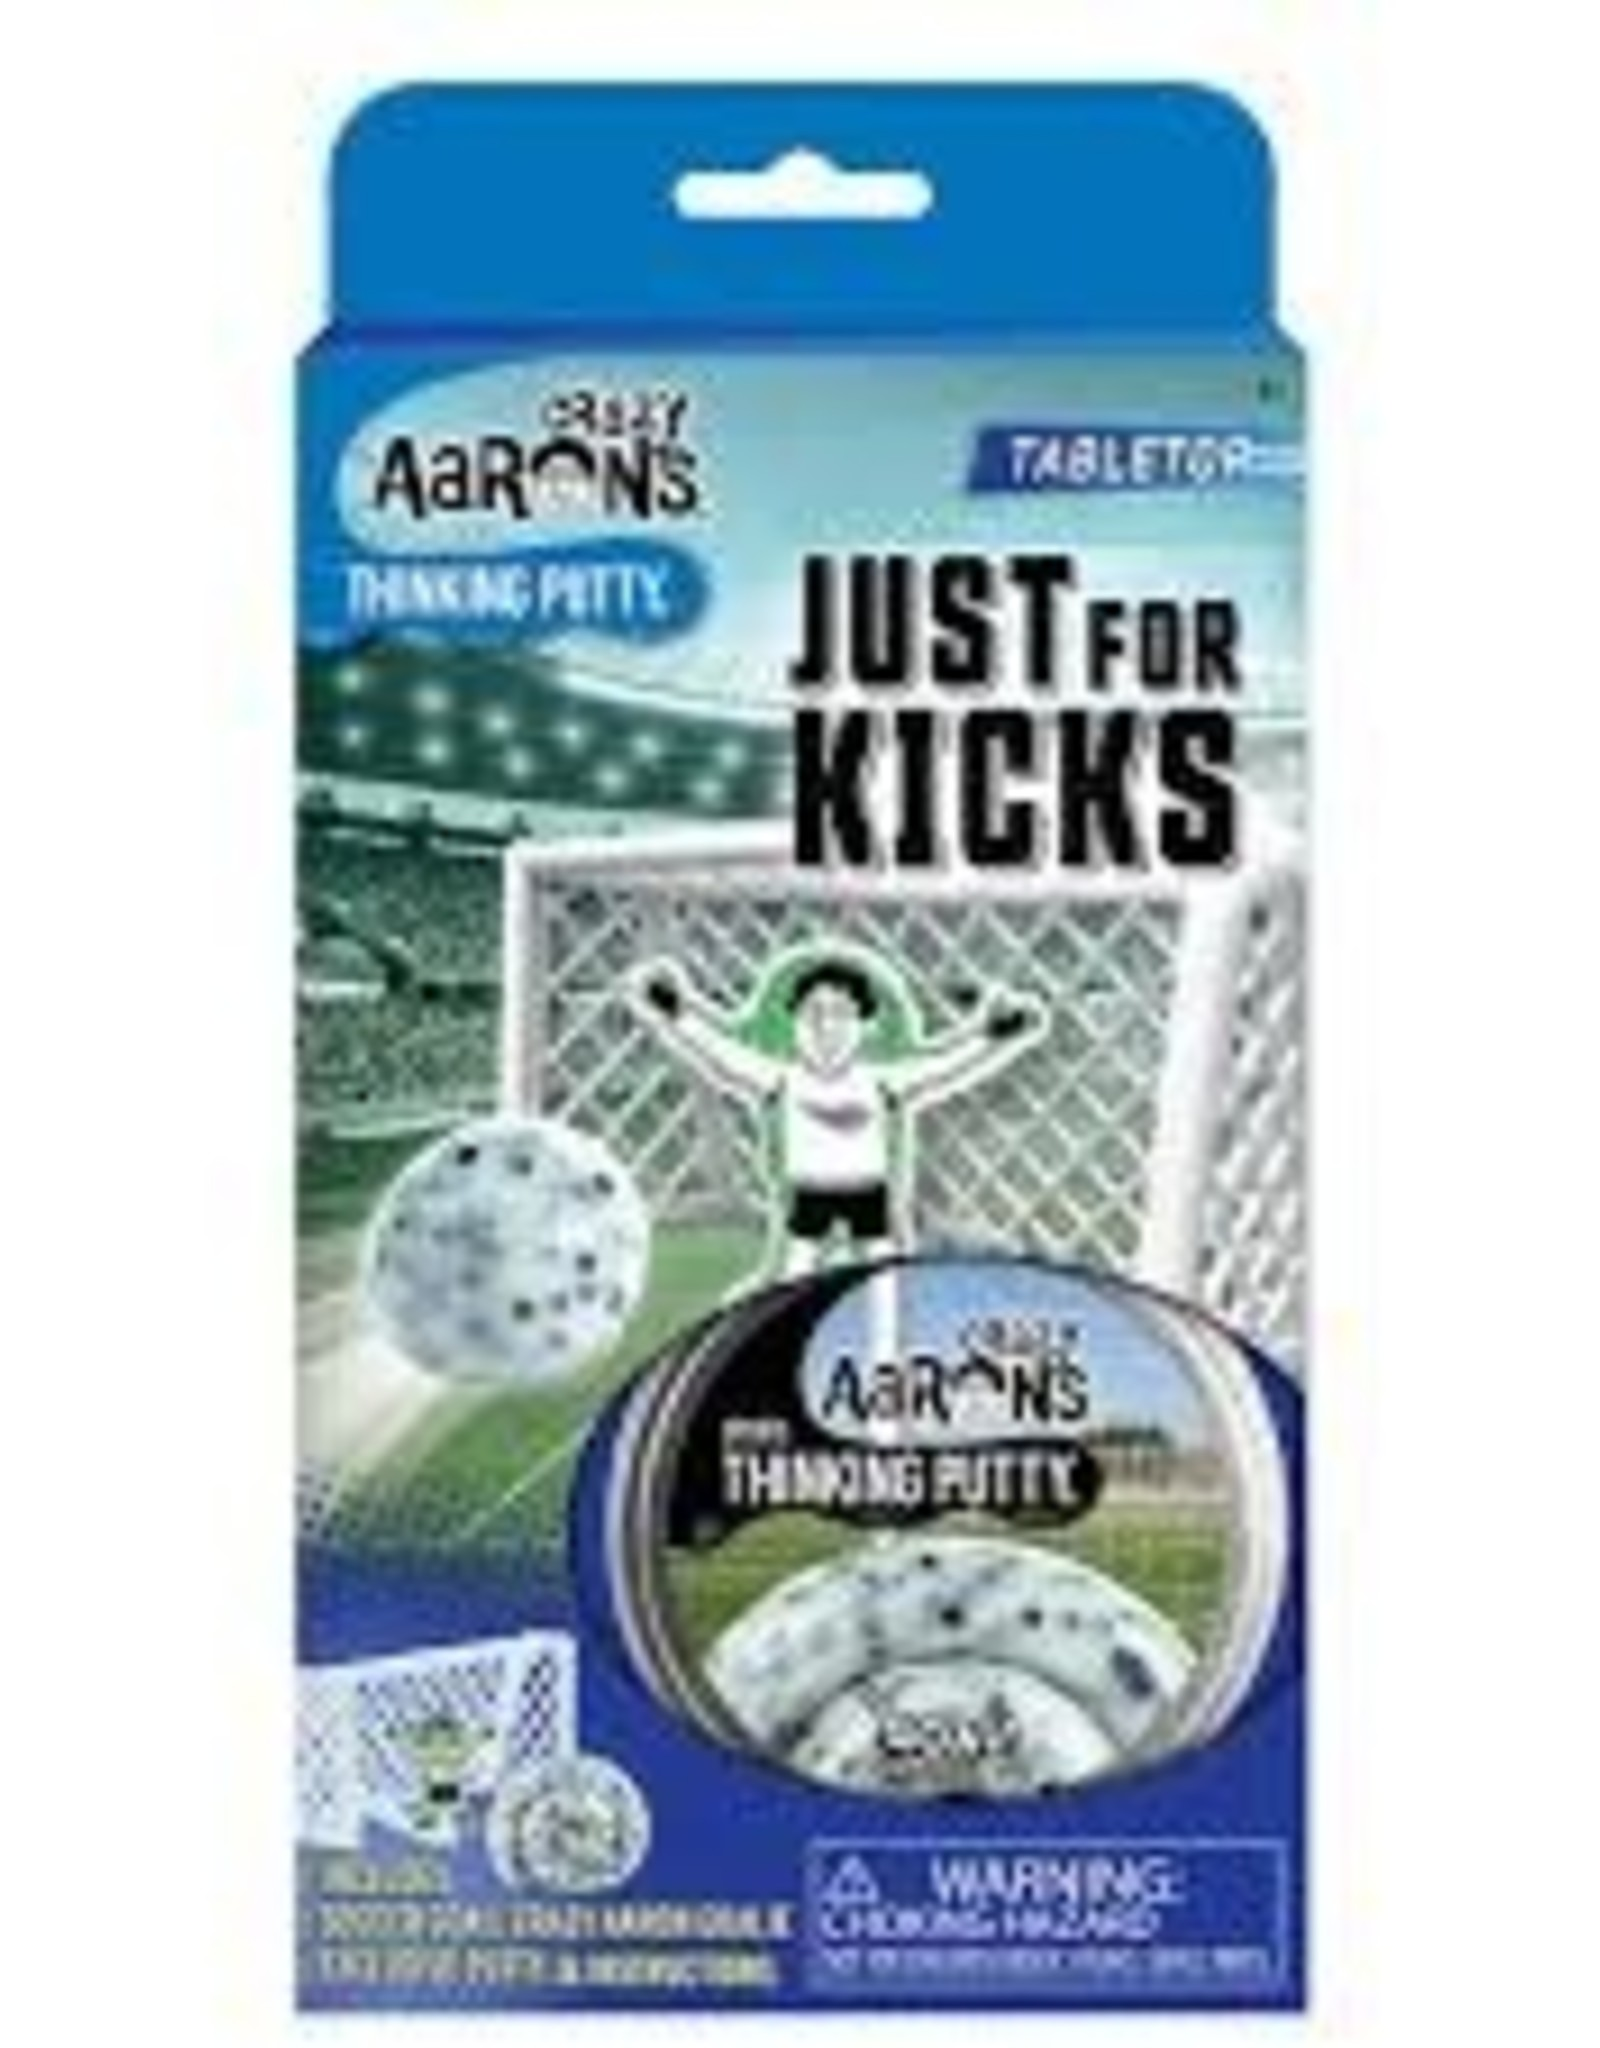 Crazy Aaron's Thinking Putty Sports Putty - Just for Kicks Soccer